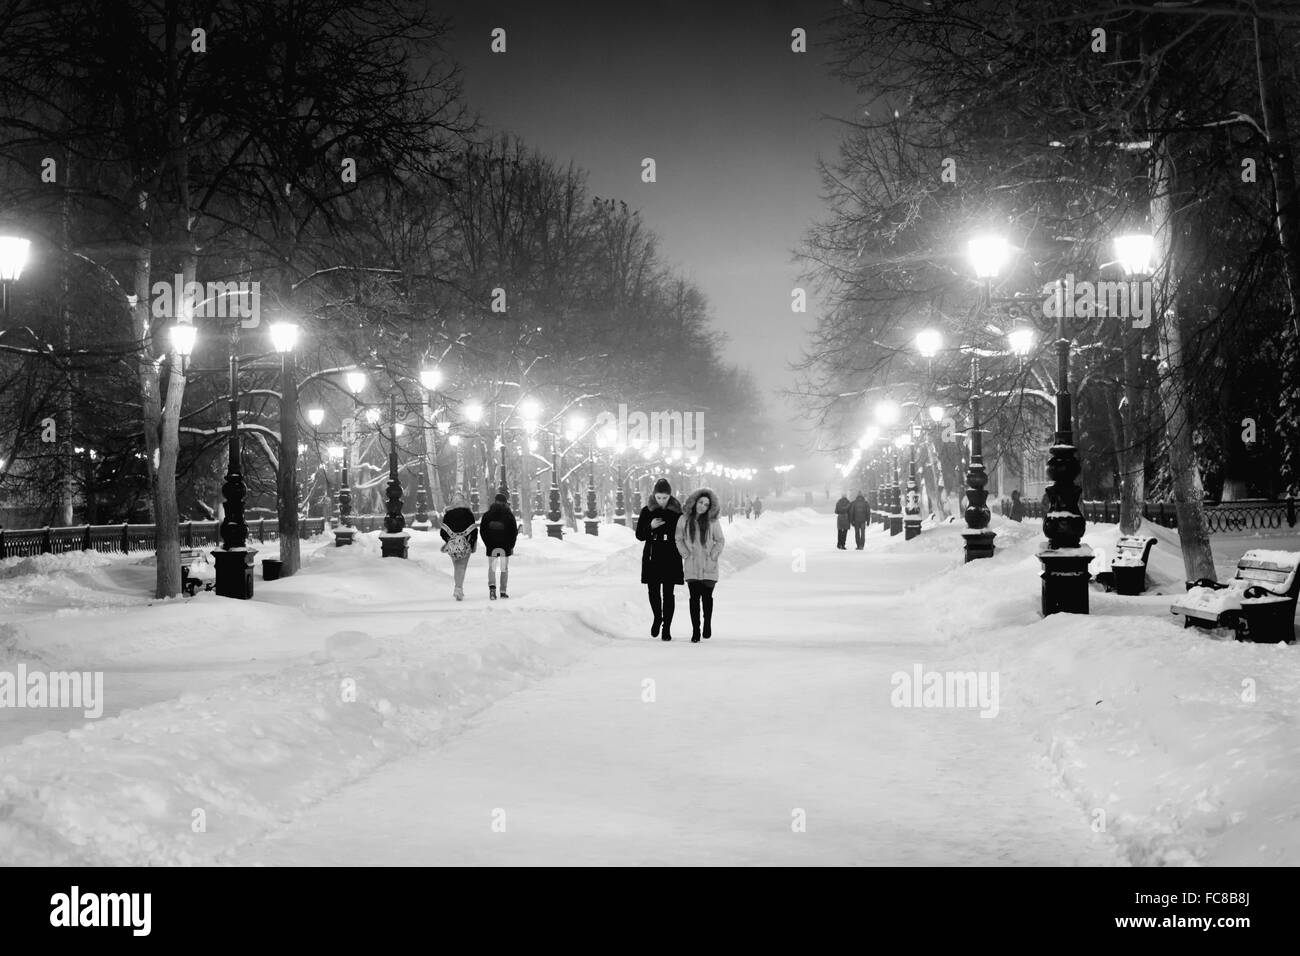 People walk along an illuminated boulevard at night in the winter snow as ornate street lamps illuminate their path - Stock Image